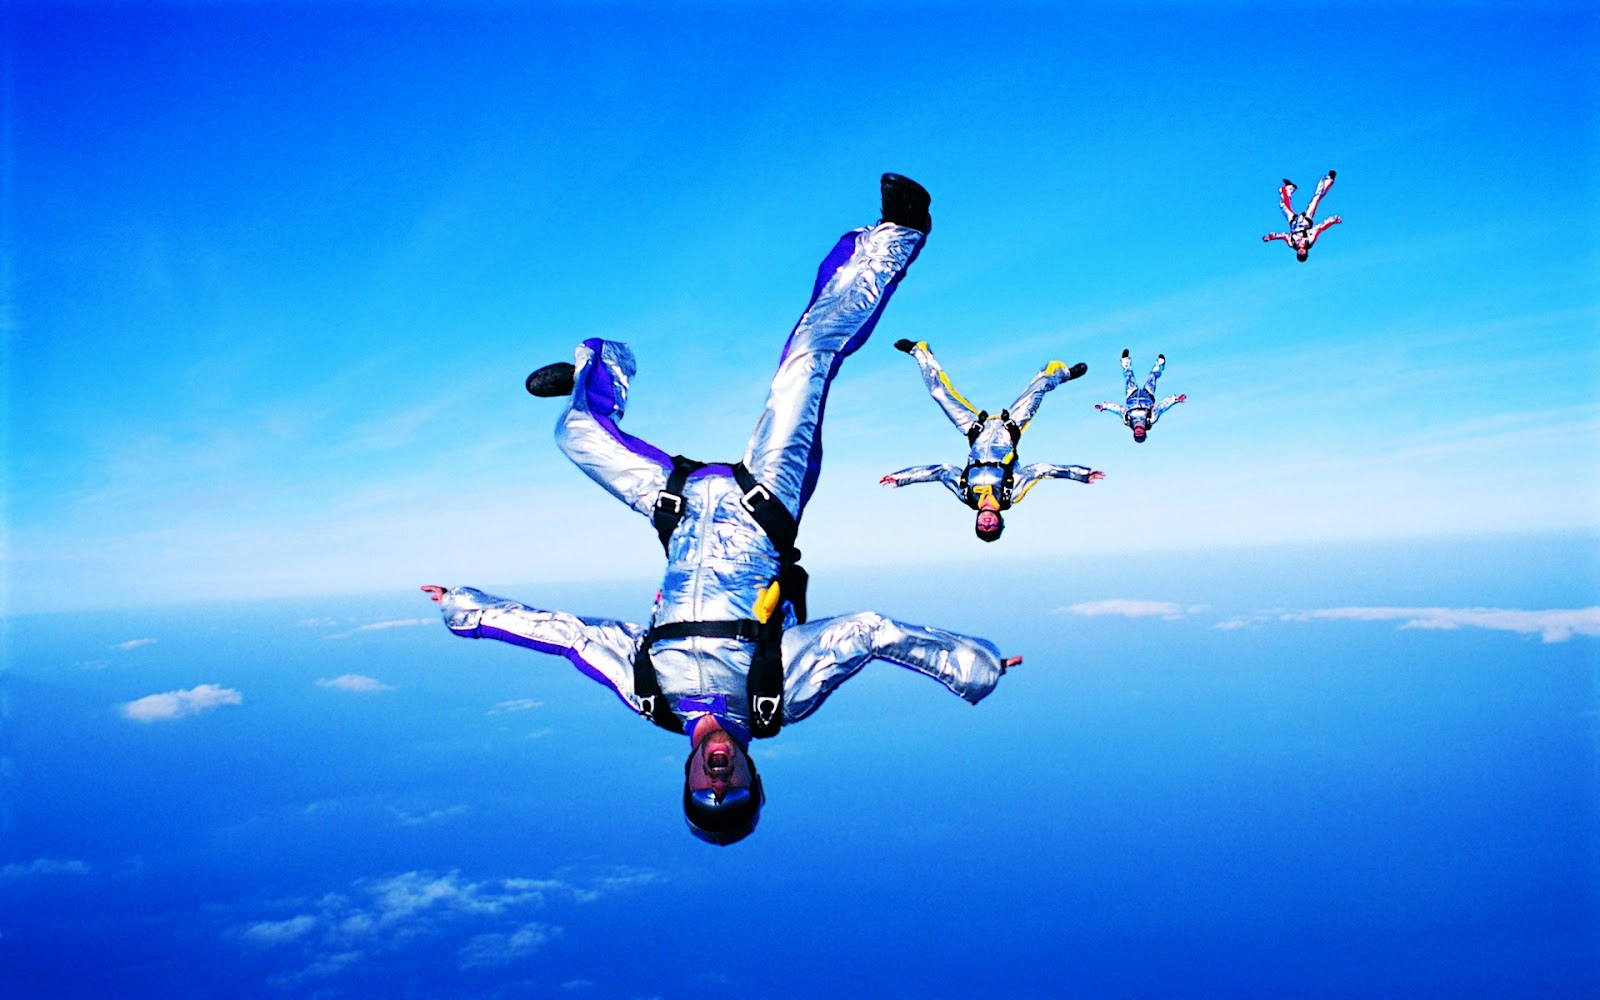 extreme sports diving sport sky jump wonderful fool extreem base bellisima why down march